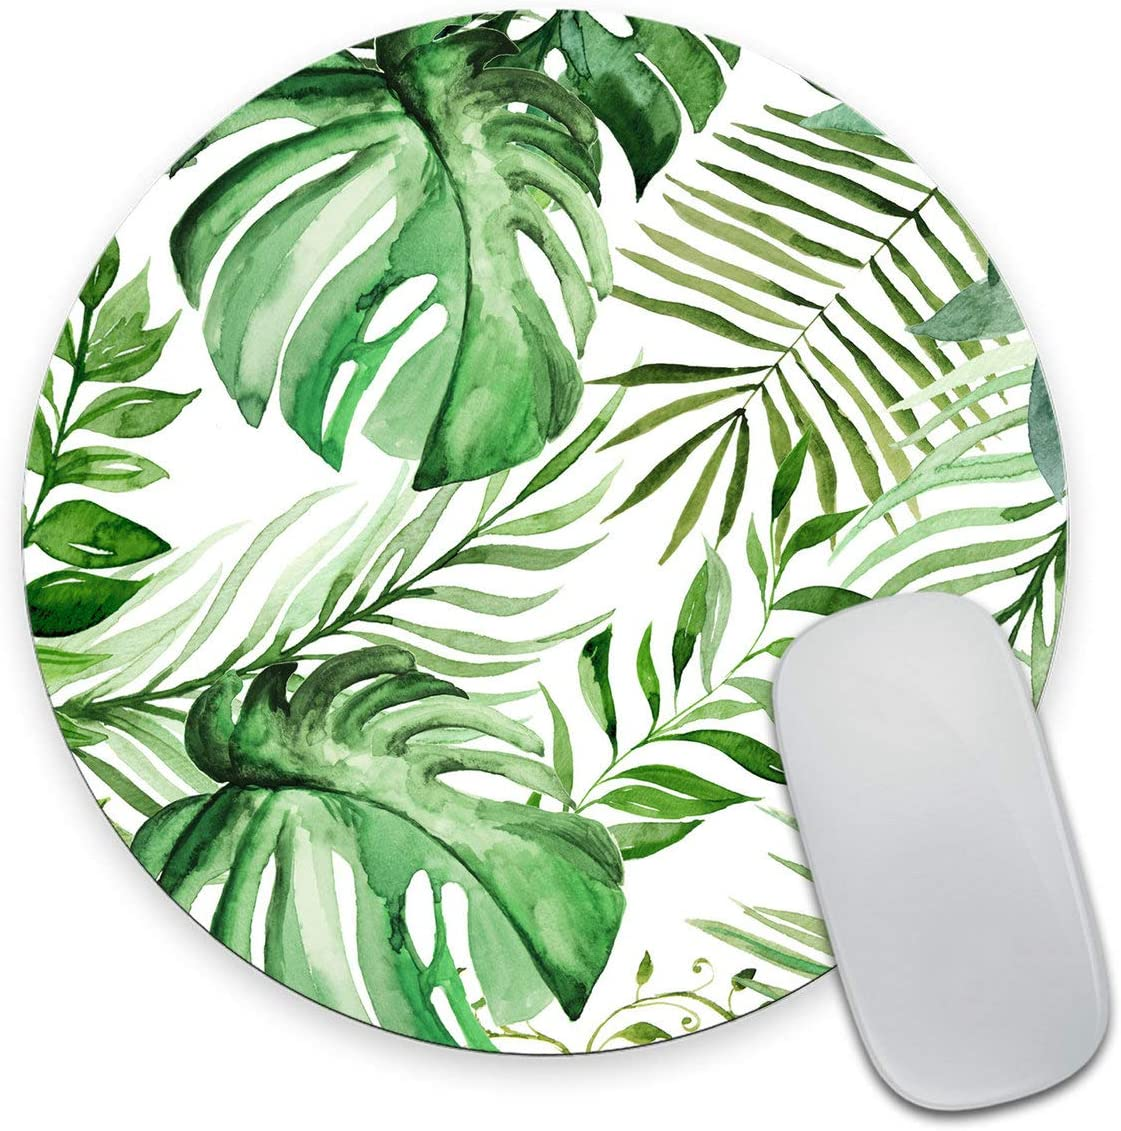 Smooffly Wild Leaf Mouse pad, Round Mousepad, Leaves Mouse pad, Office Supplies, Gift for Friend, Desk Accessories